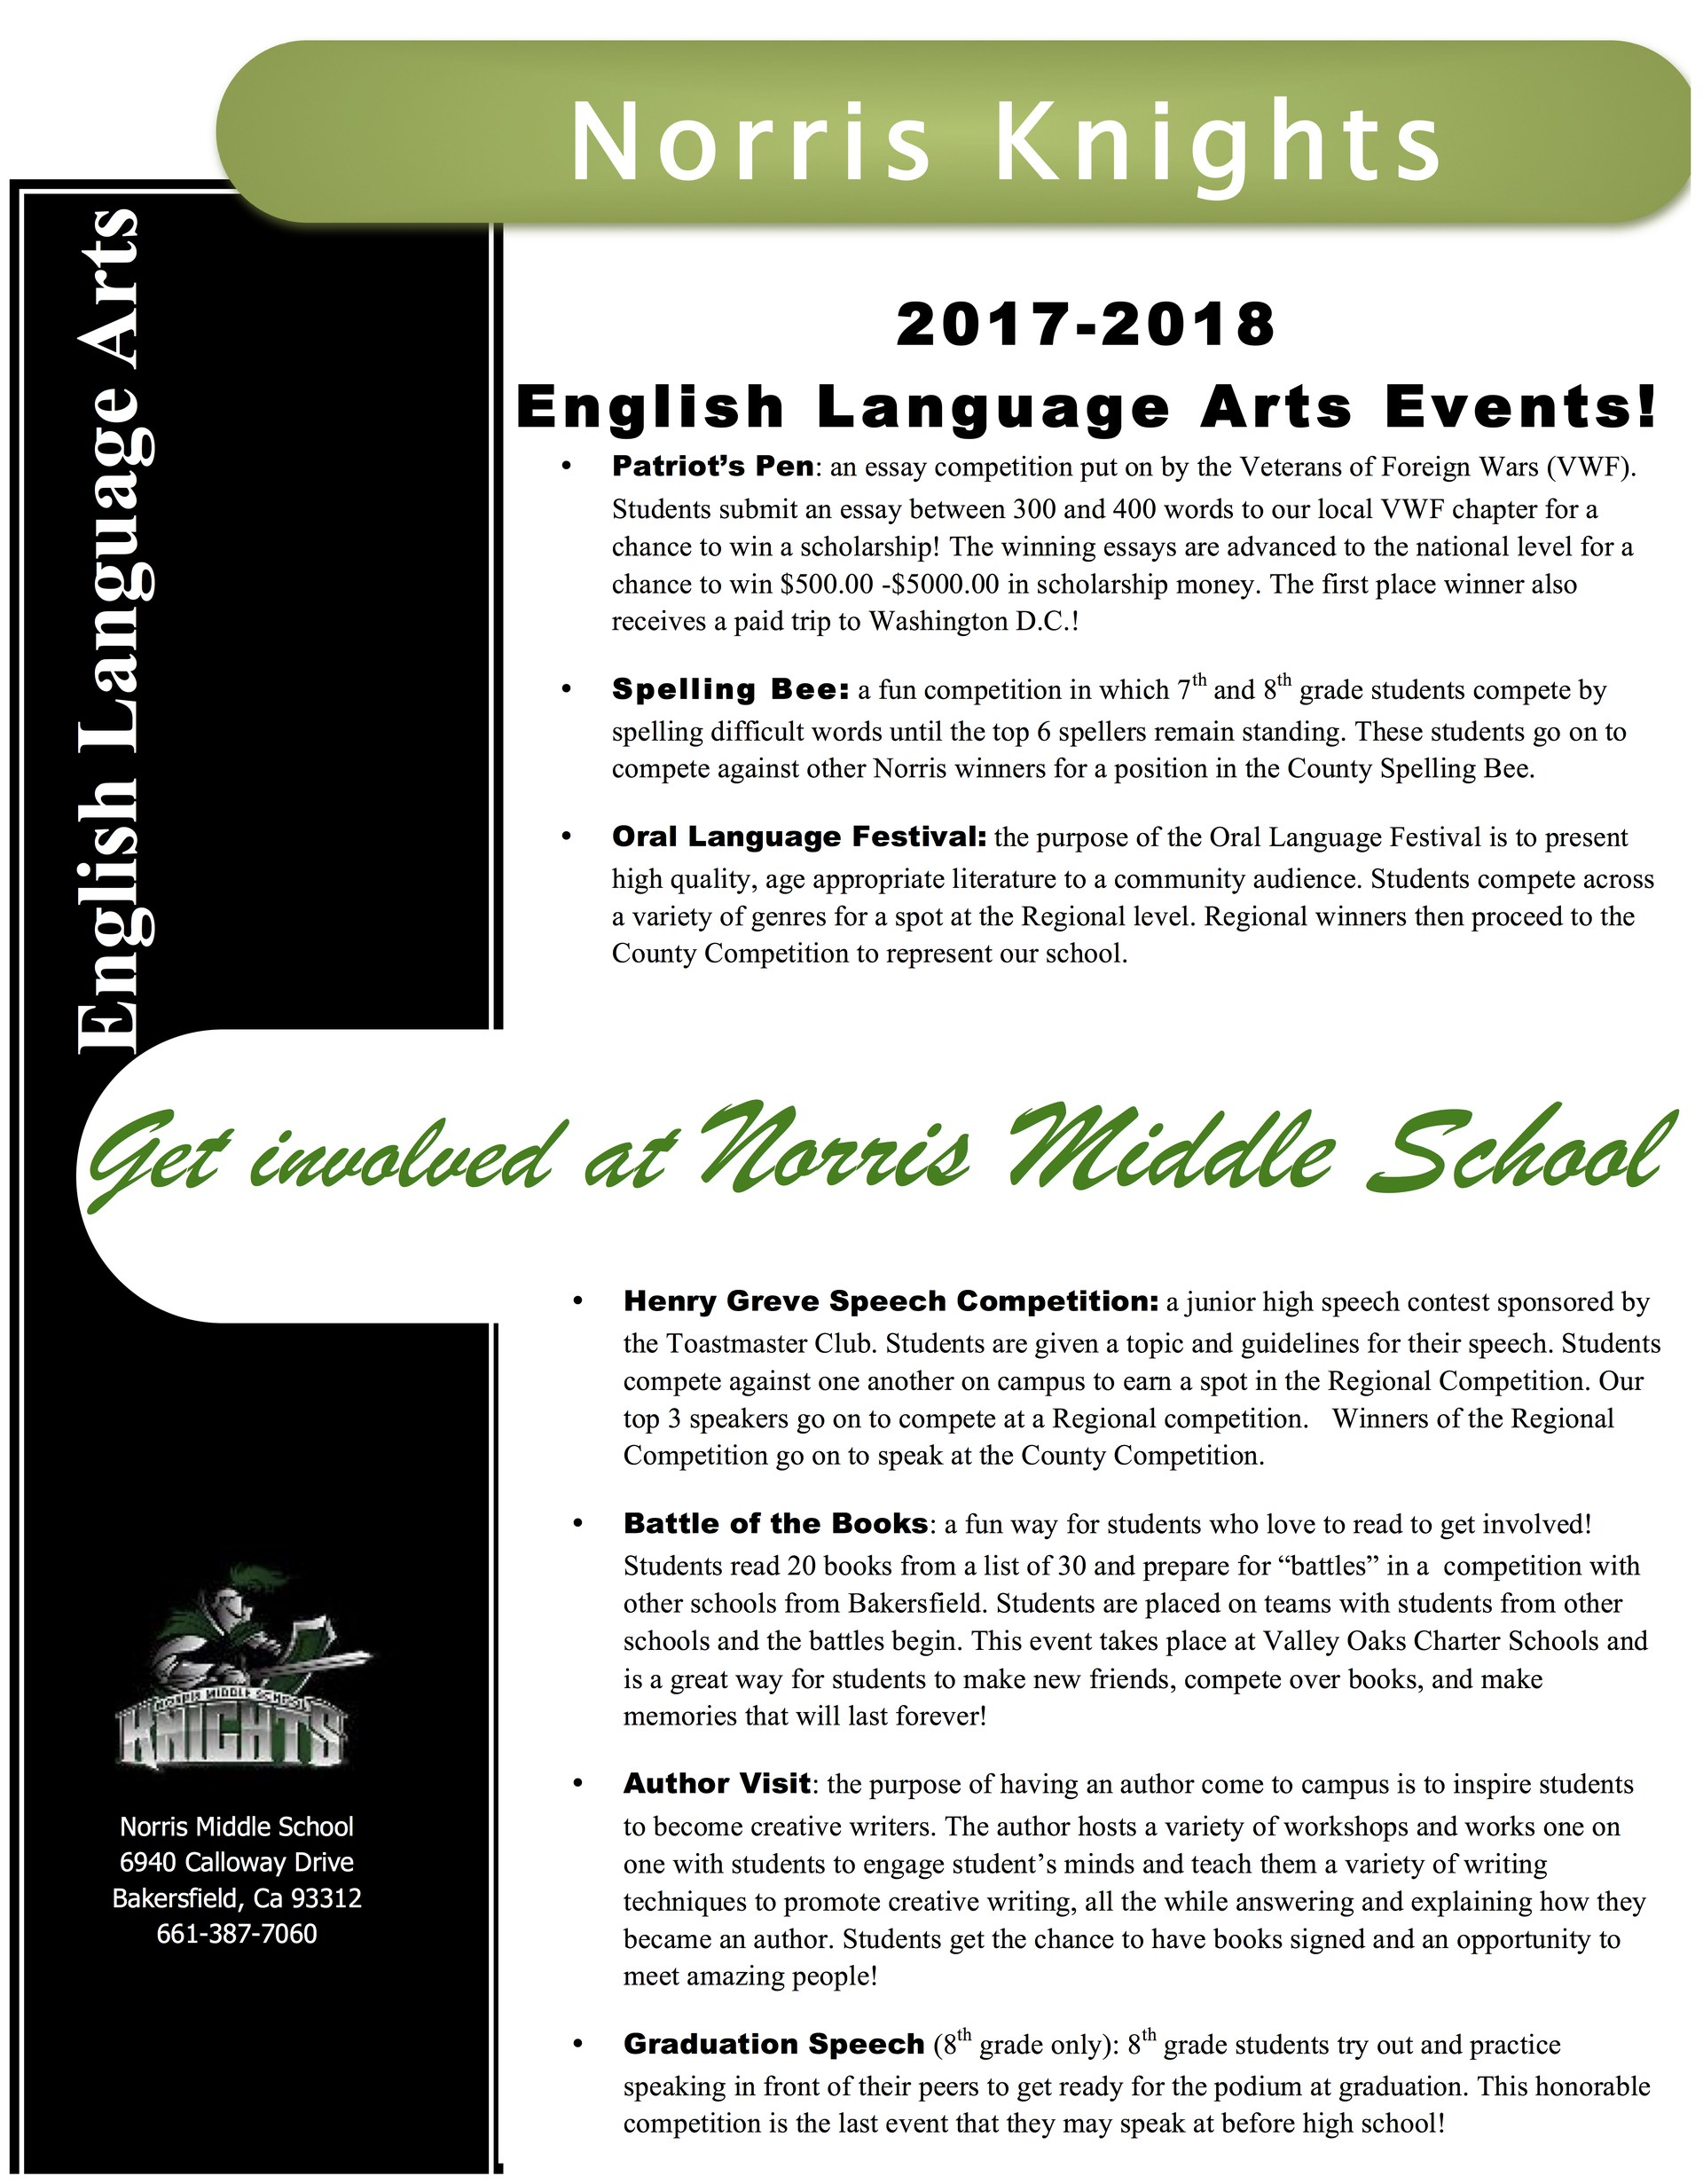 ELA events brochure